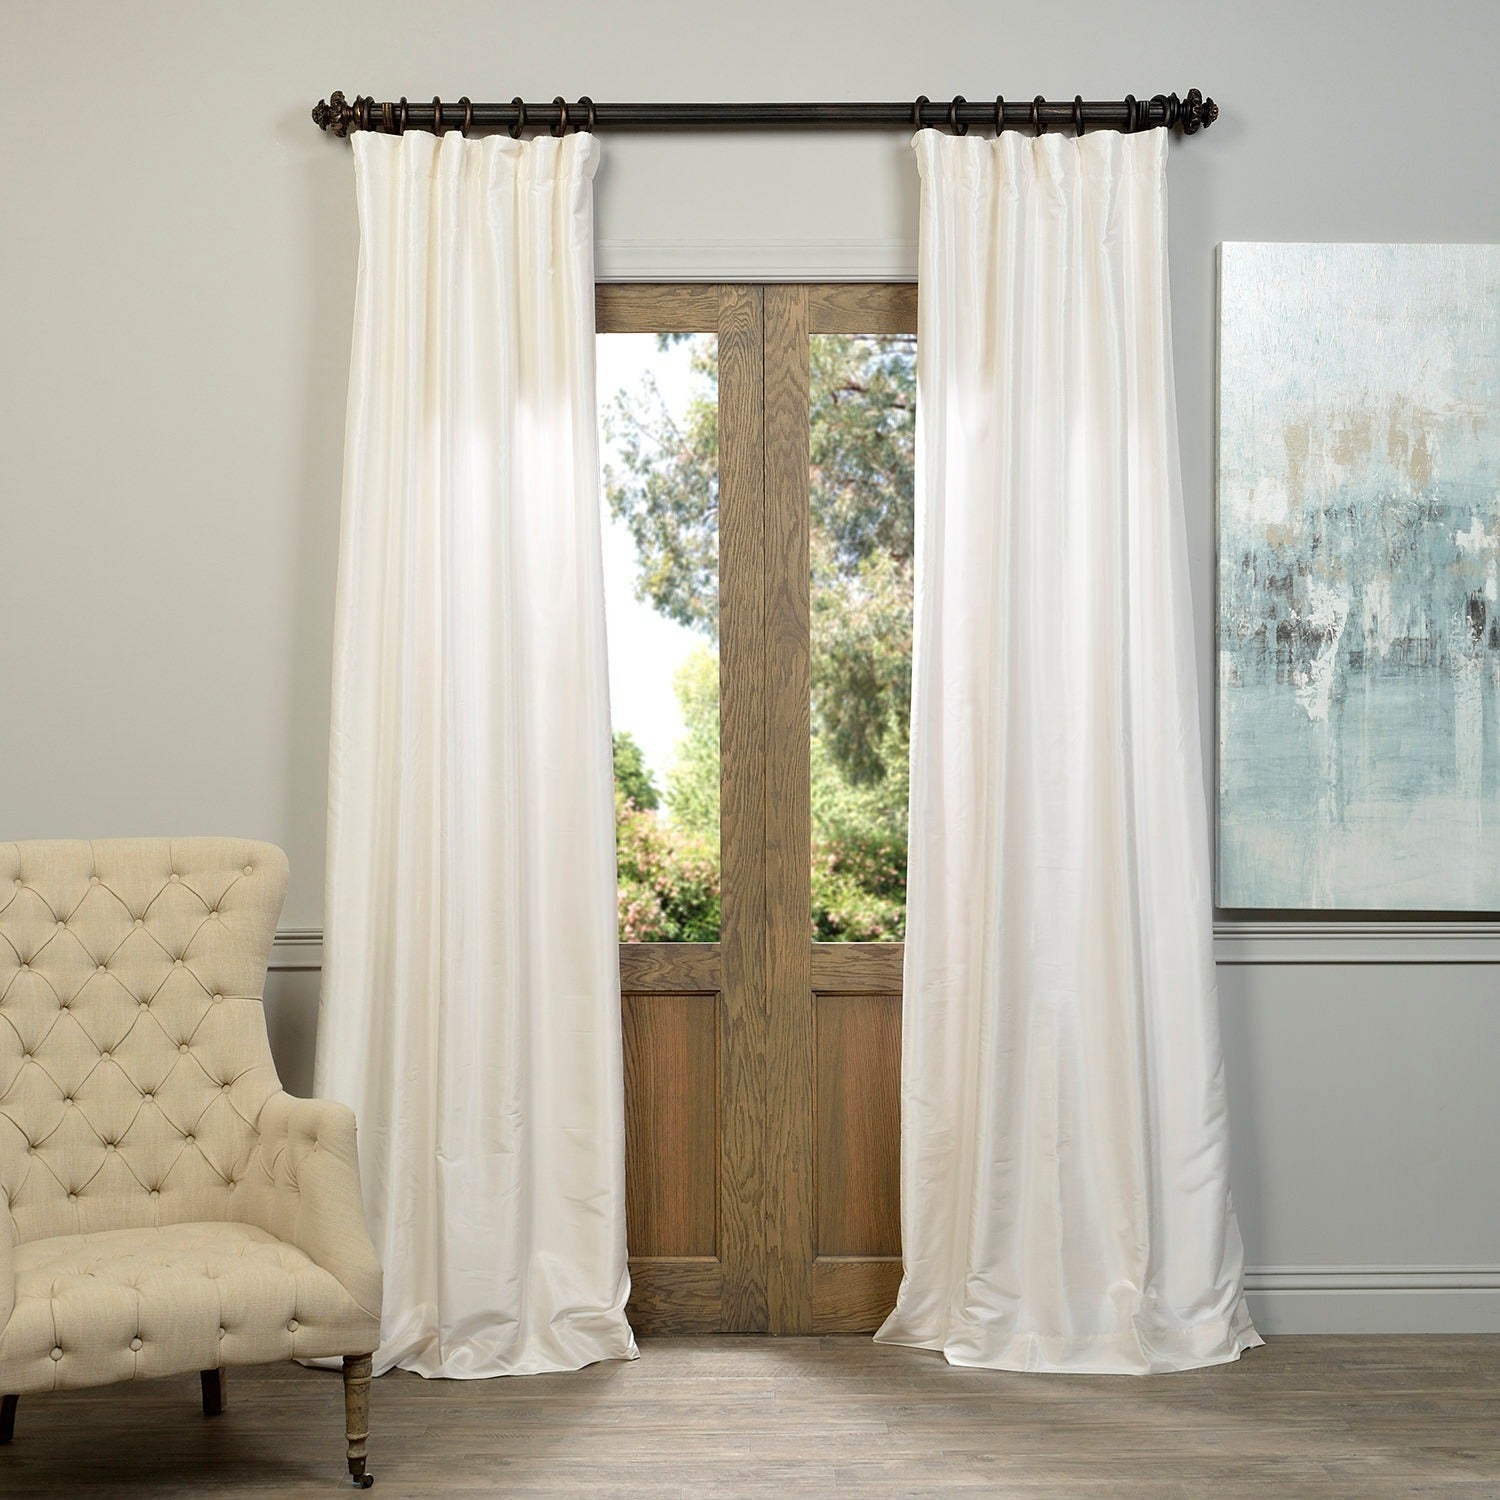 """Exclusive Fabrics Off White Vintage Faux Textured Dupioni Silk Curtain Panel 96""""l (as Is Item) Intended For Vintage Faux Textured Dupioni Silk Curtain Panels (View 5 of 30)"""